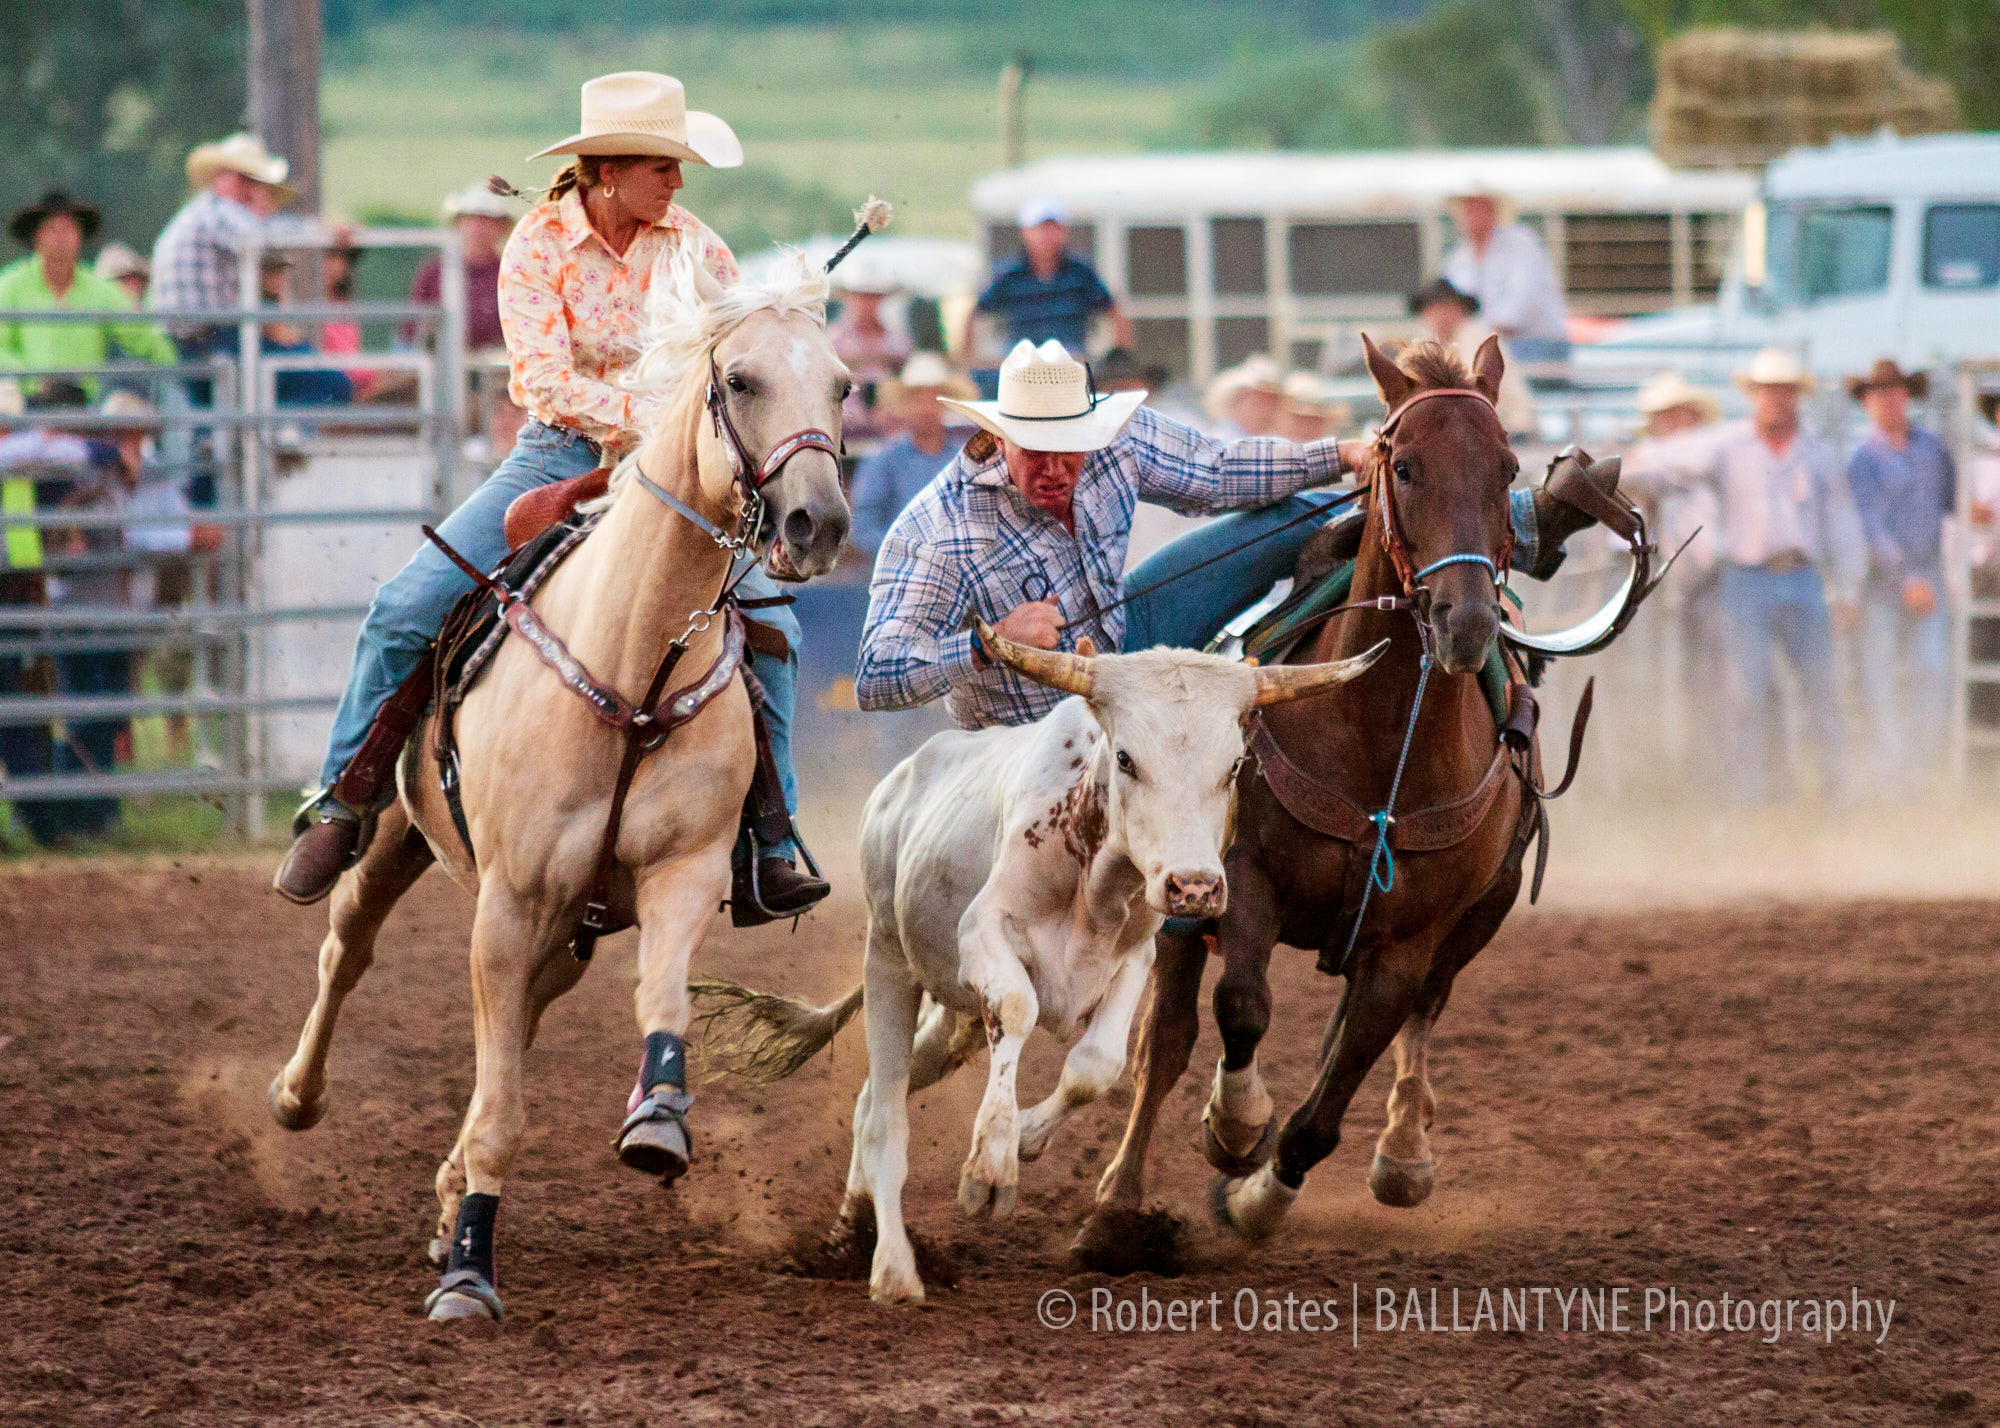 10-12-31-New-South-Wales-Upper-Horton-Rodeo-18-36-32.jpg